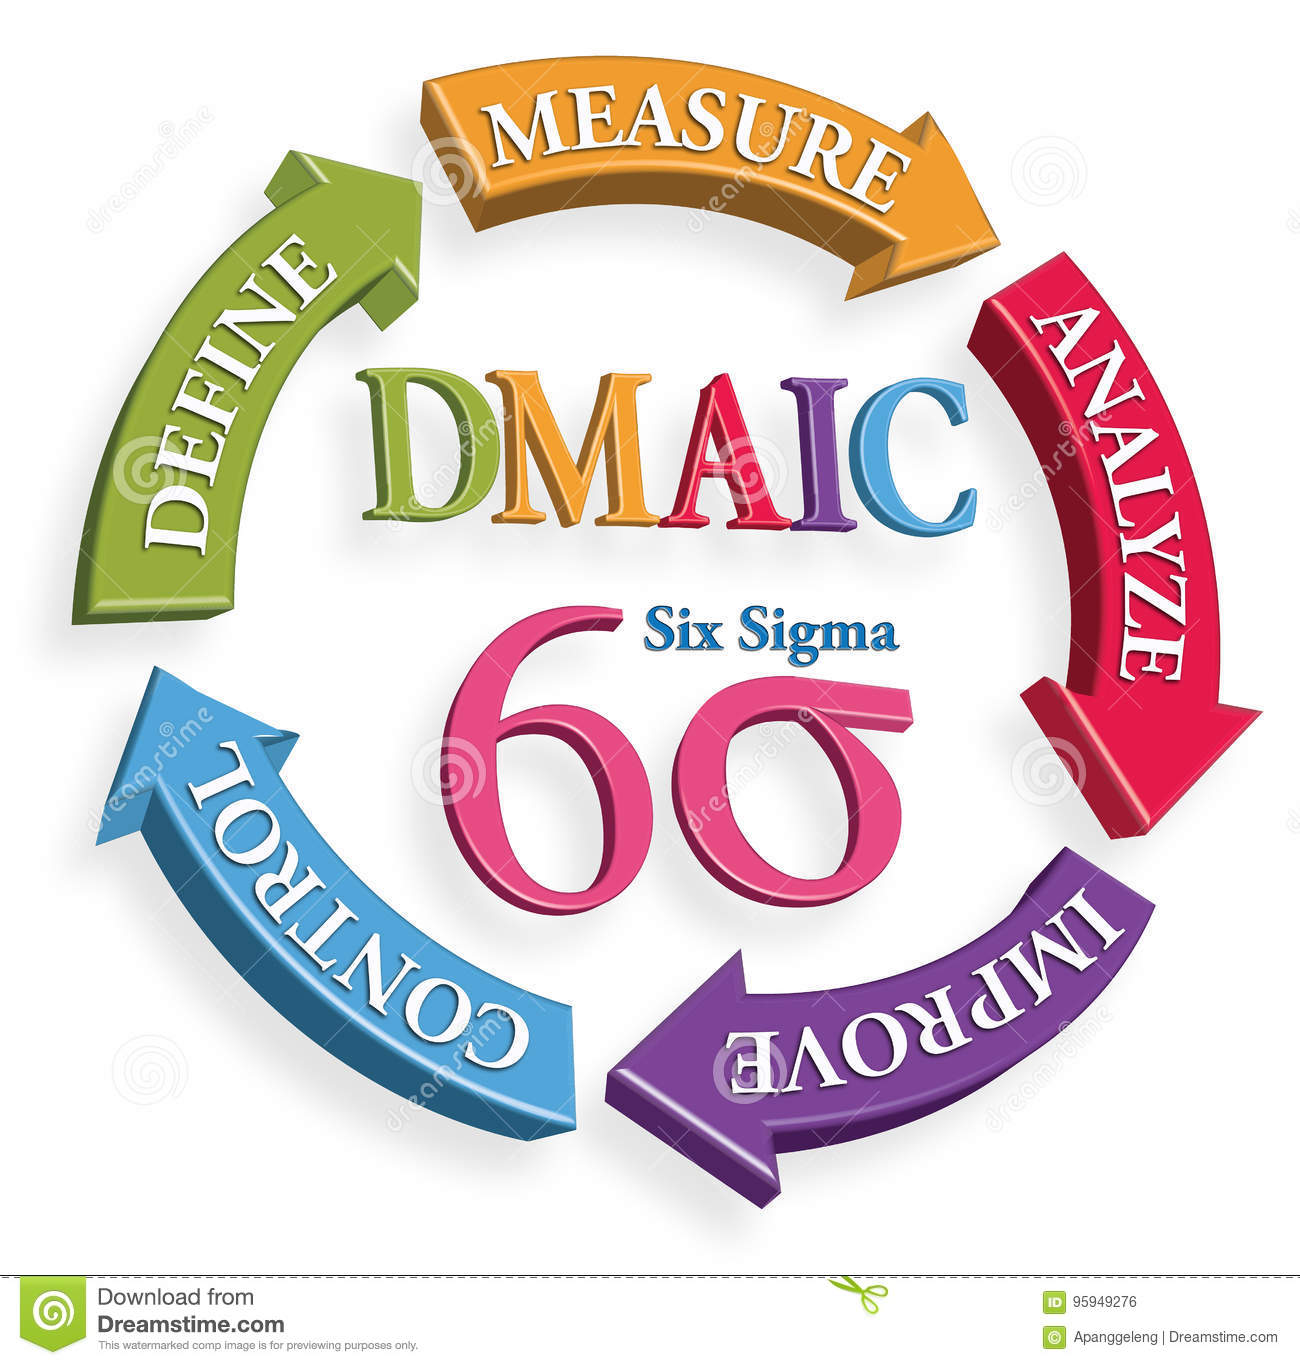 Six Sigma DMAIC Tools For Productivity With Transparency Background.